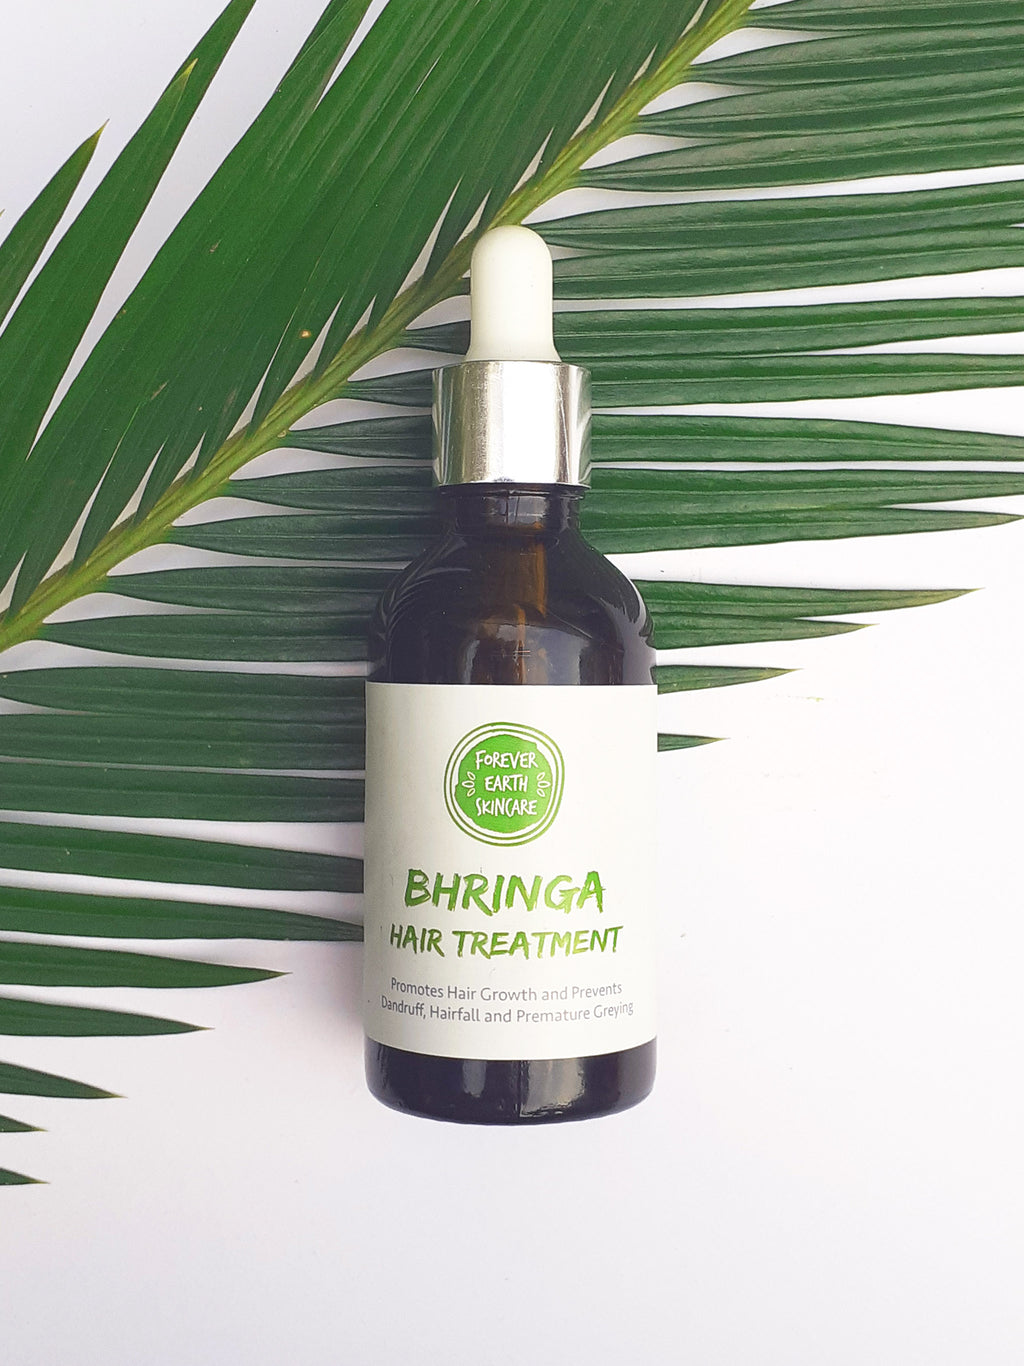 Bhringa Hair Treatment